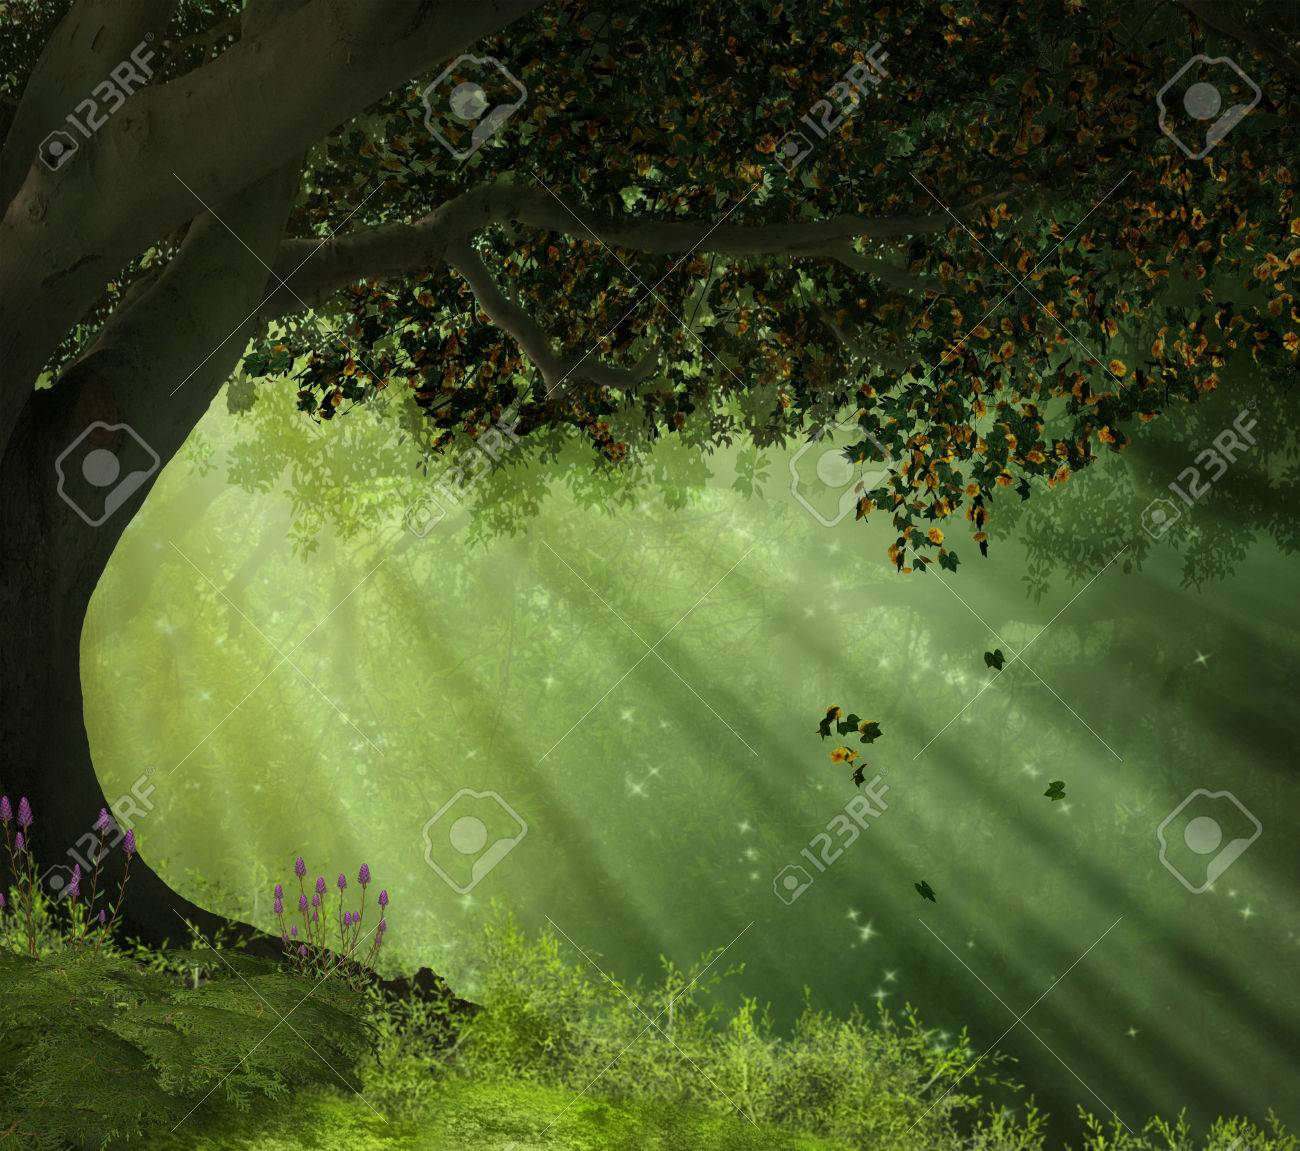 an old tree in a forest with rays of lights illuminating the scene - 32091597